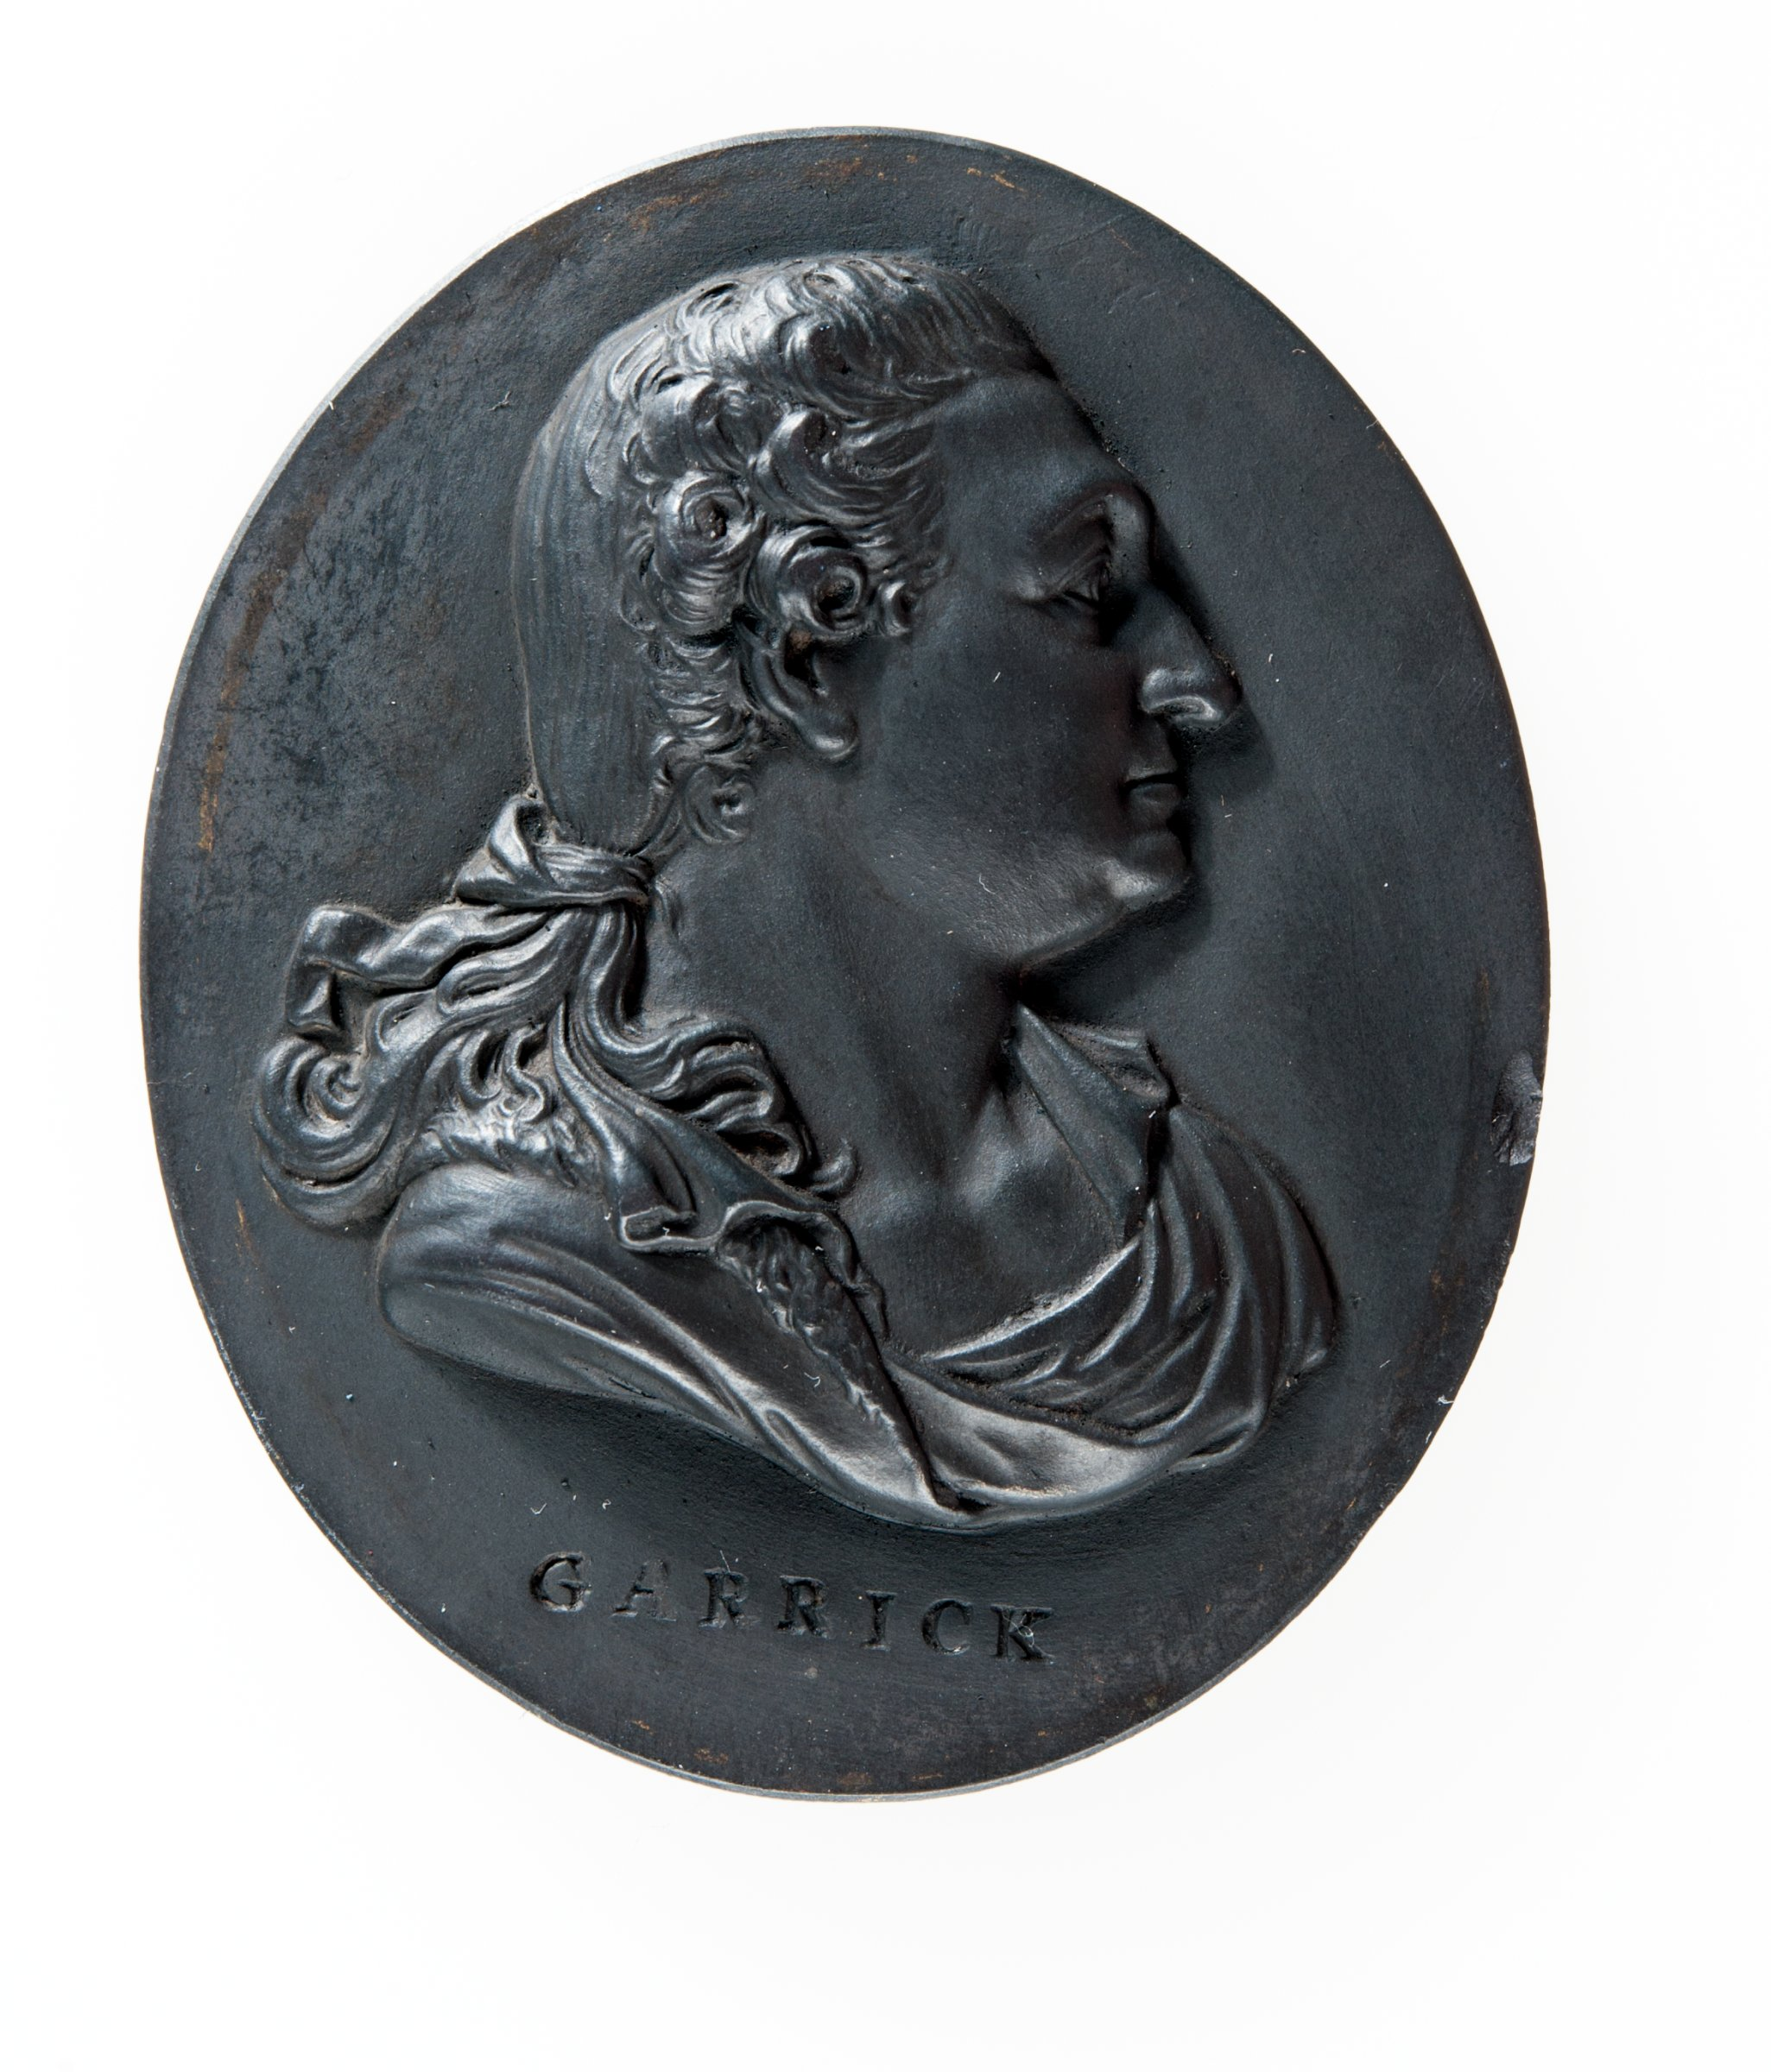 Small oval medallion of black basalt with the relief profile portrait bust of David Garrick (1717-1779), English actor, in classical drapery, to right, with the name GARRICK below the truncation.